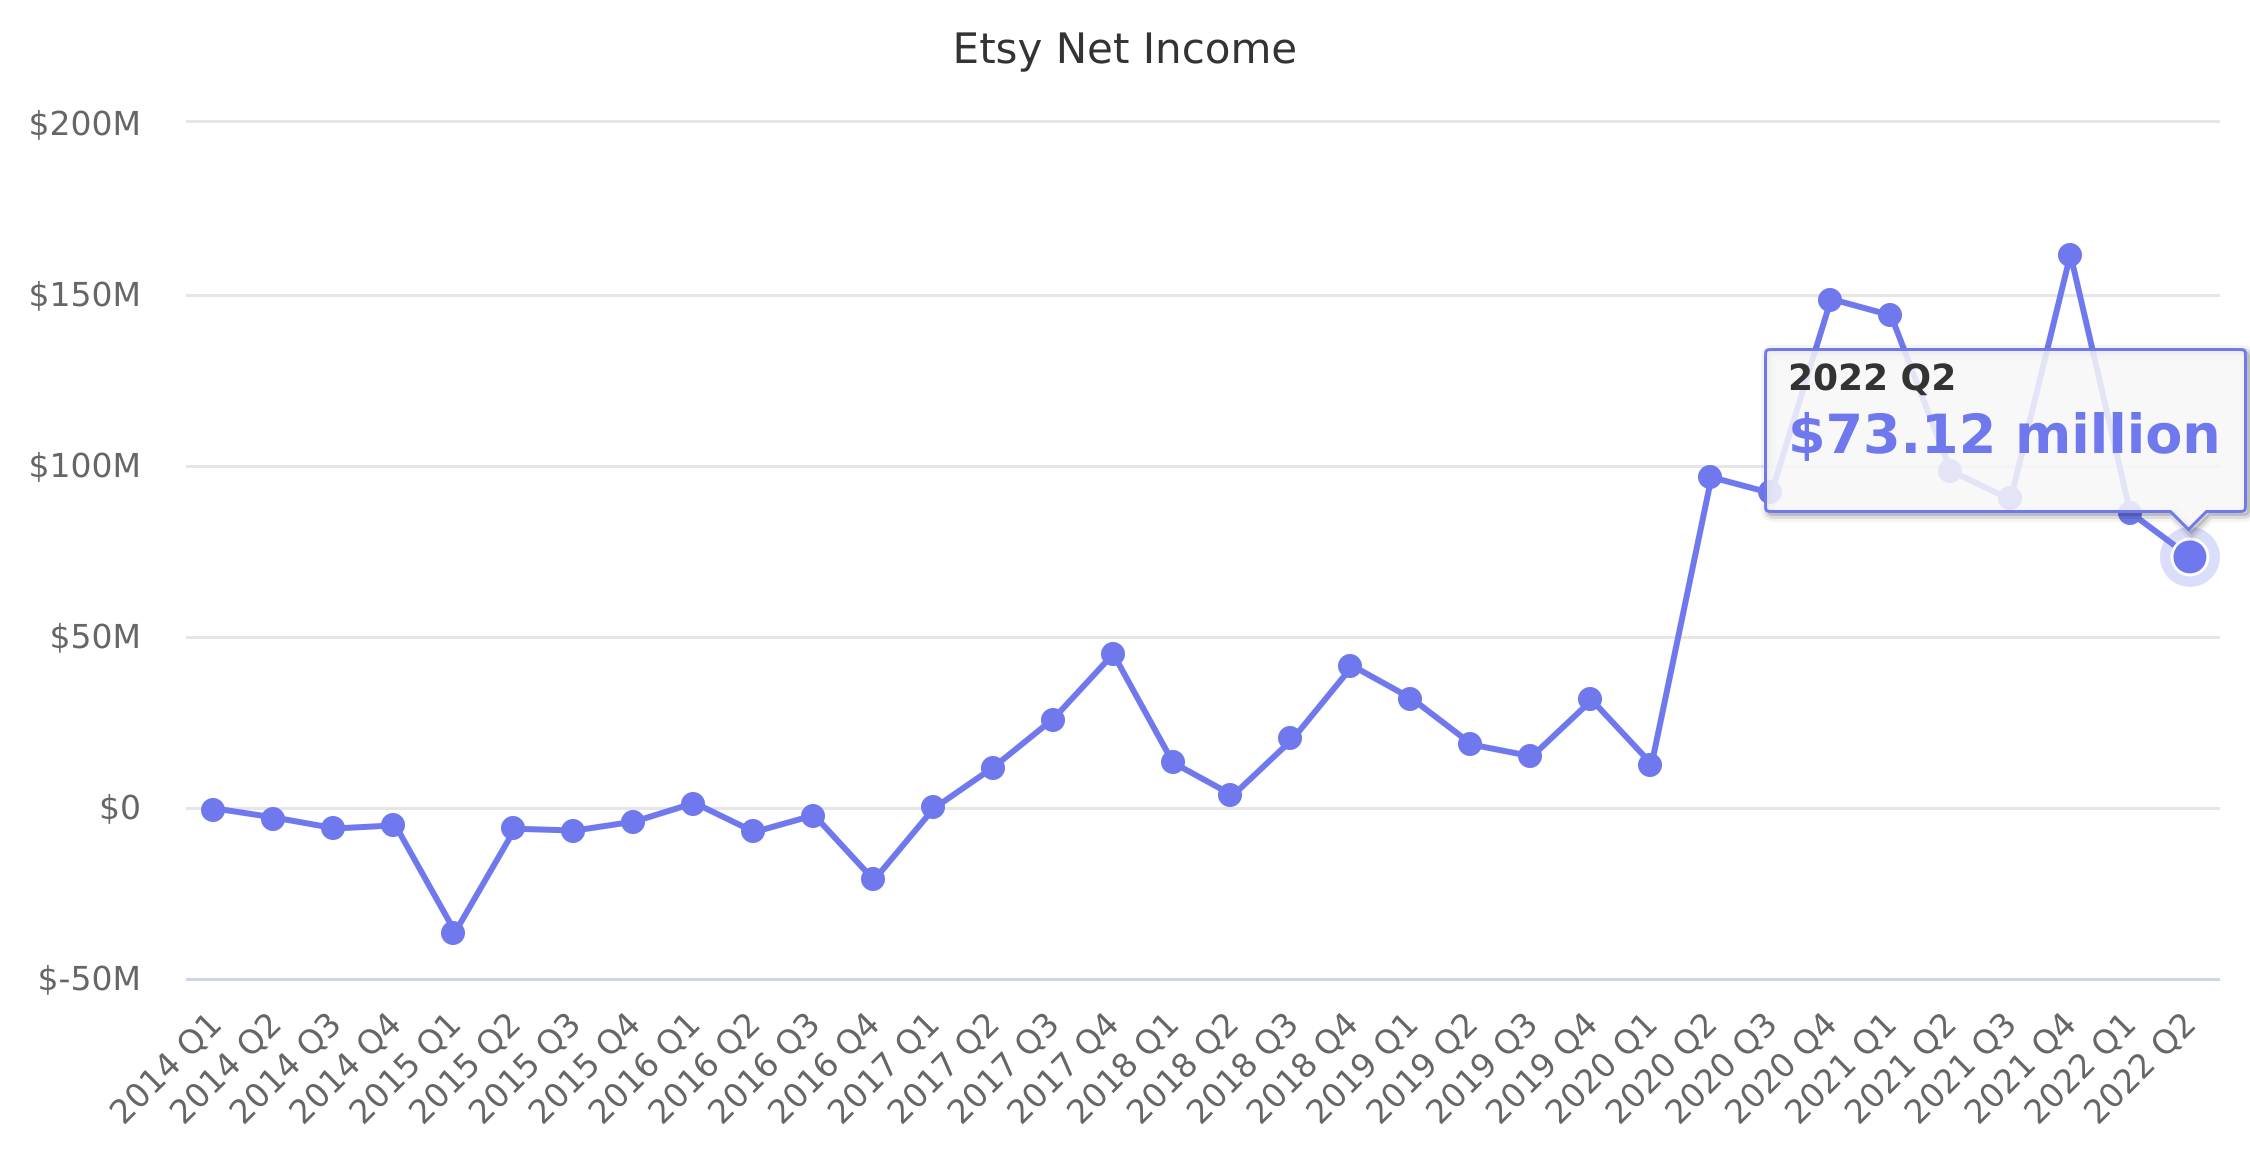 Etsy Net Income 2014-2019